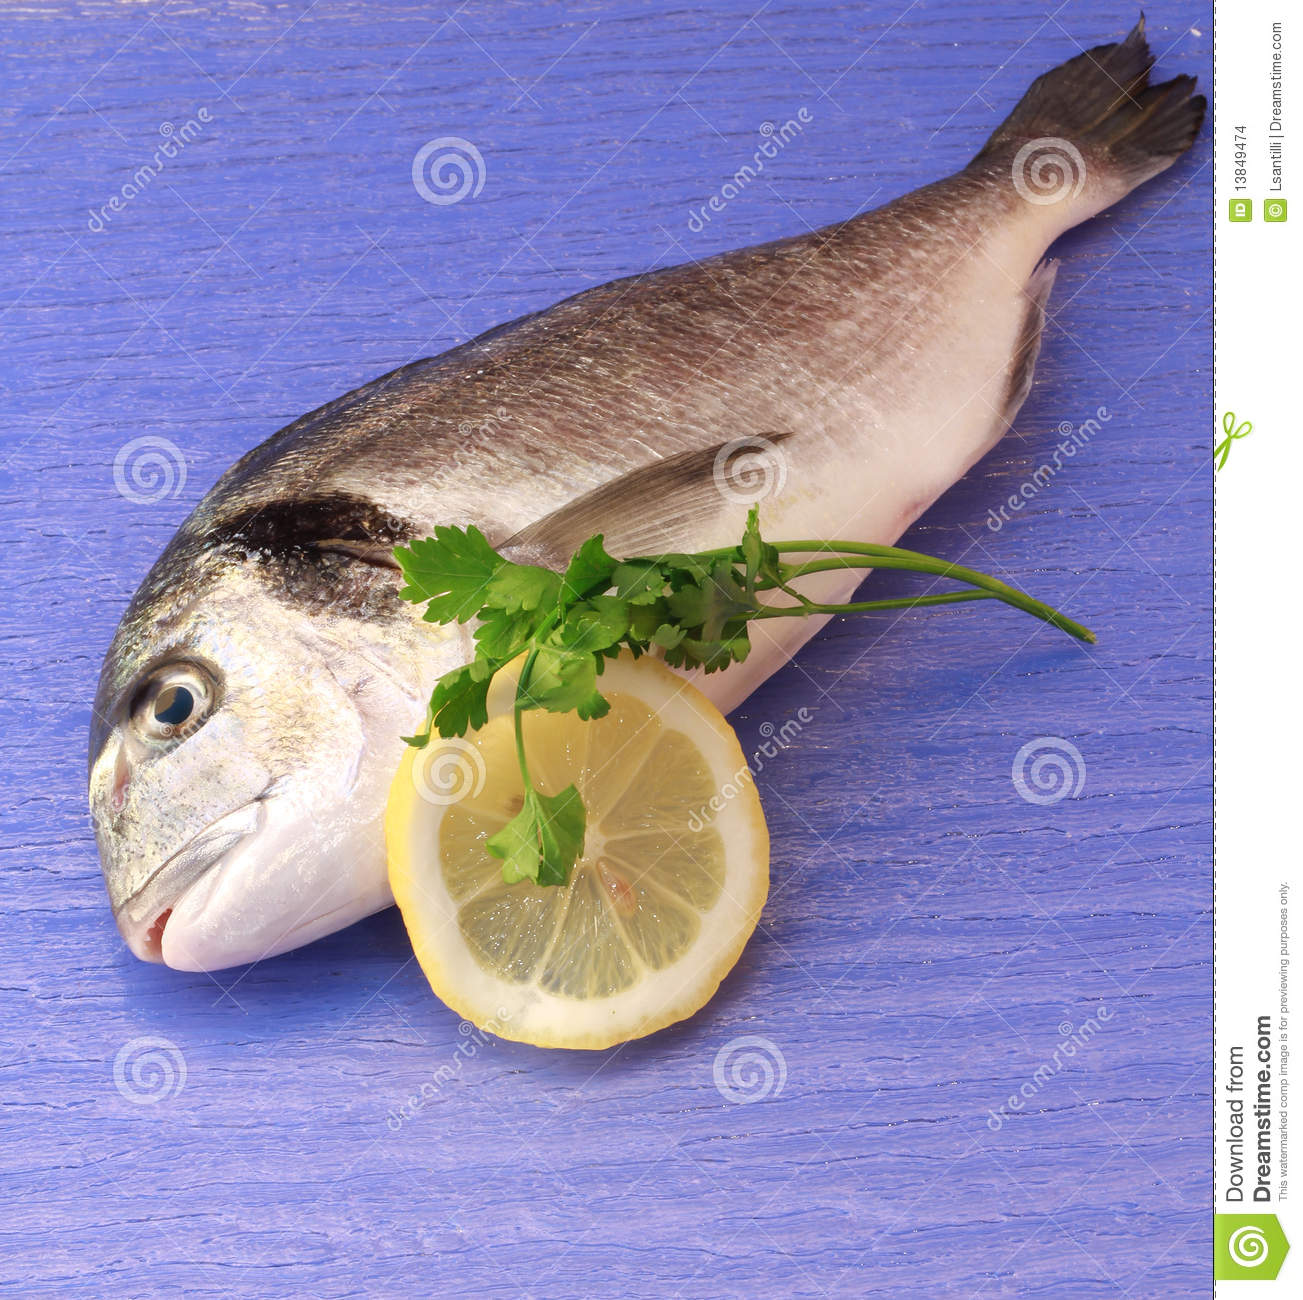 Sea Bream Stock Images - Image: 13849474